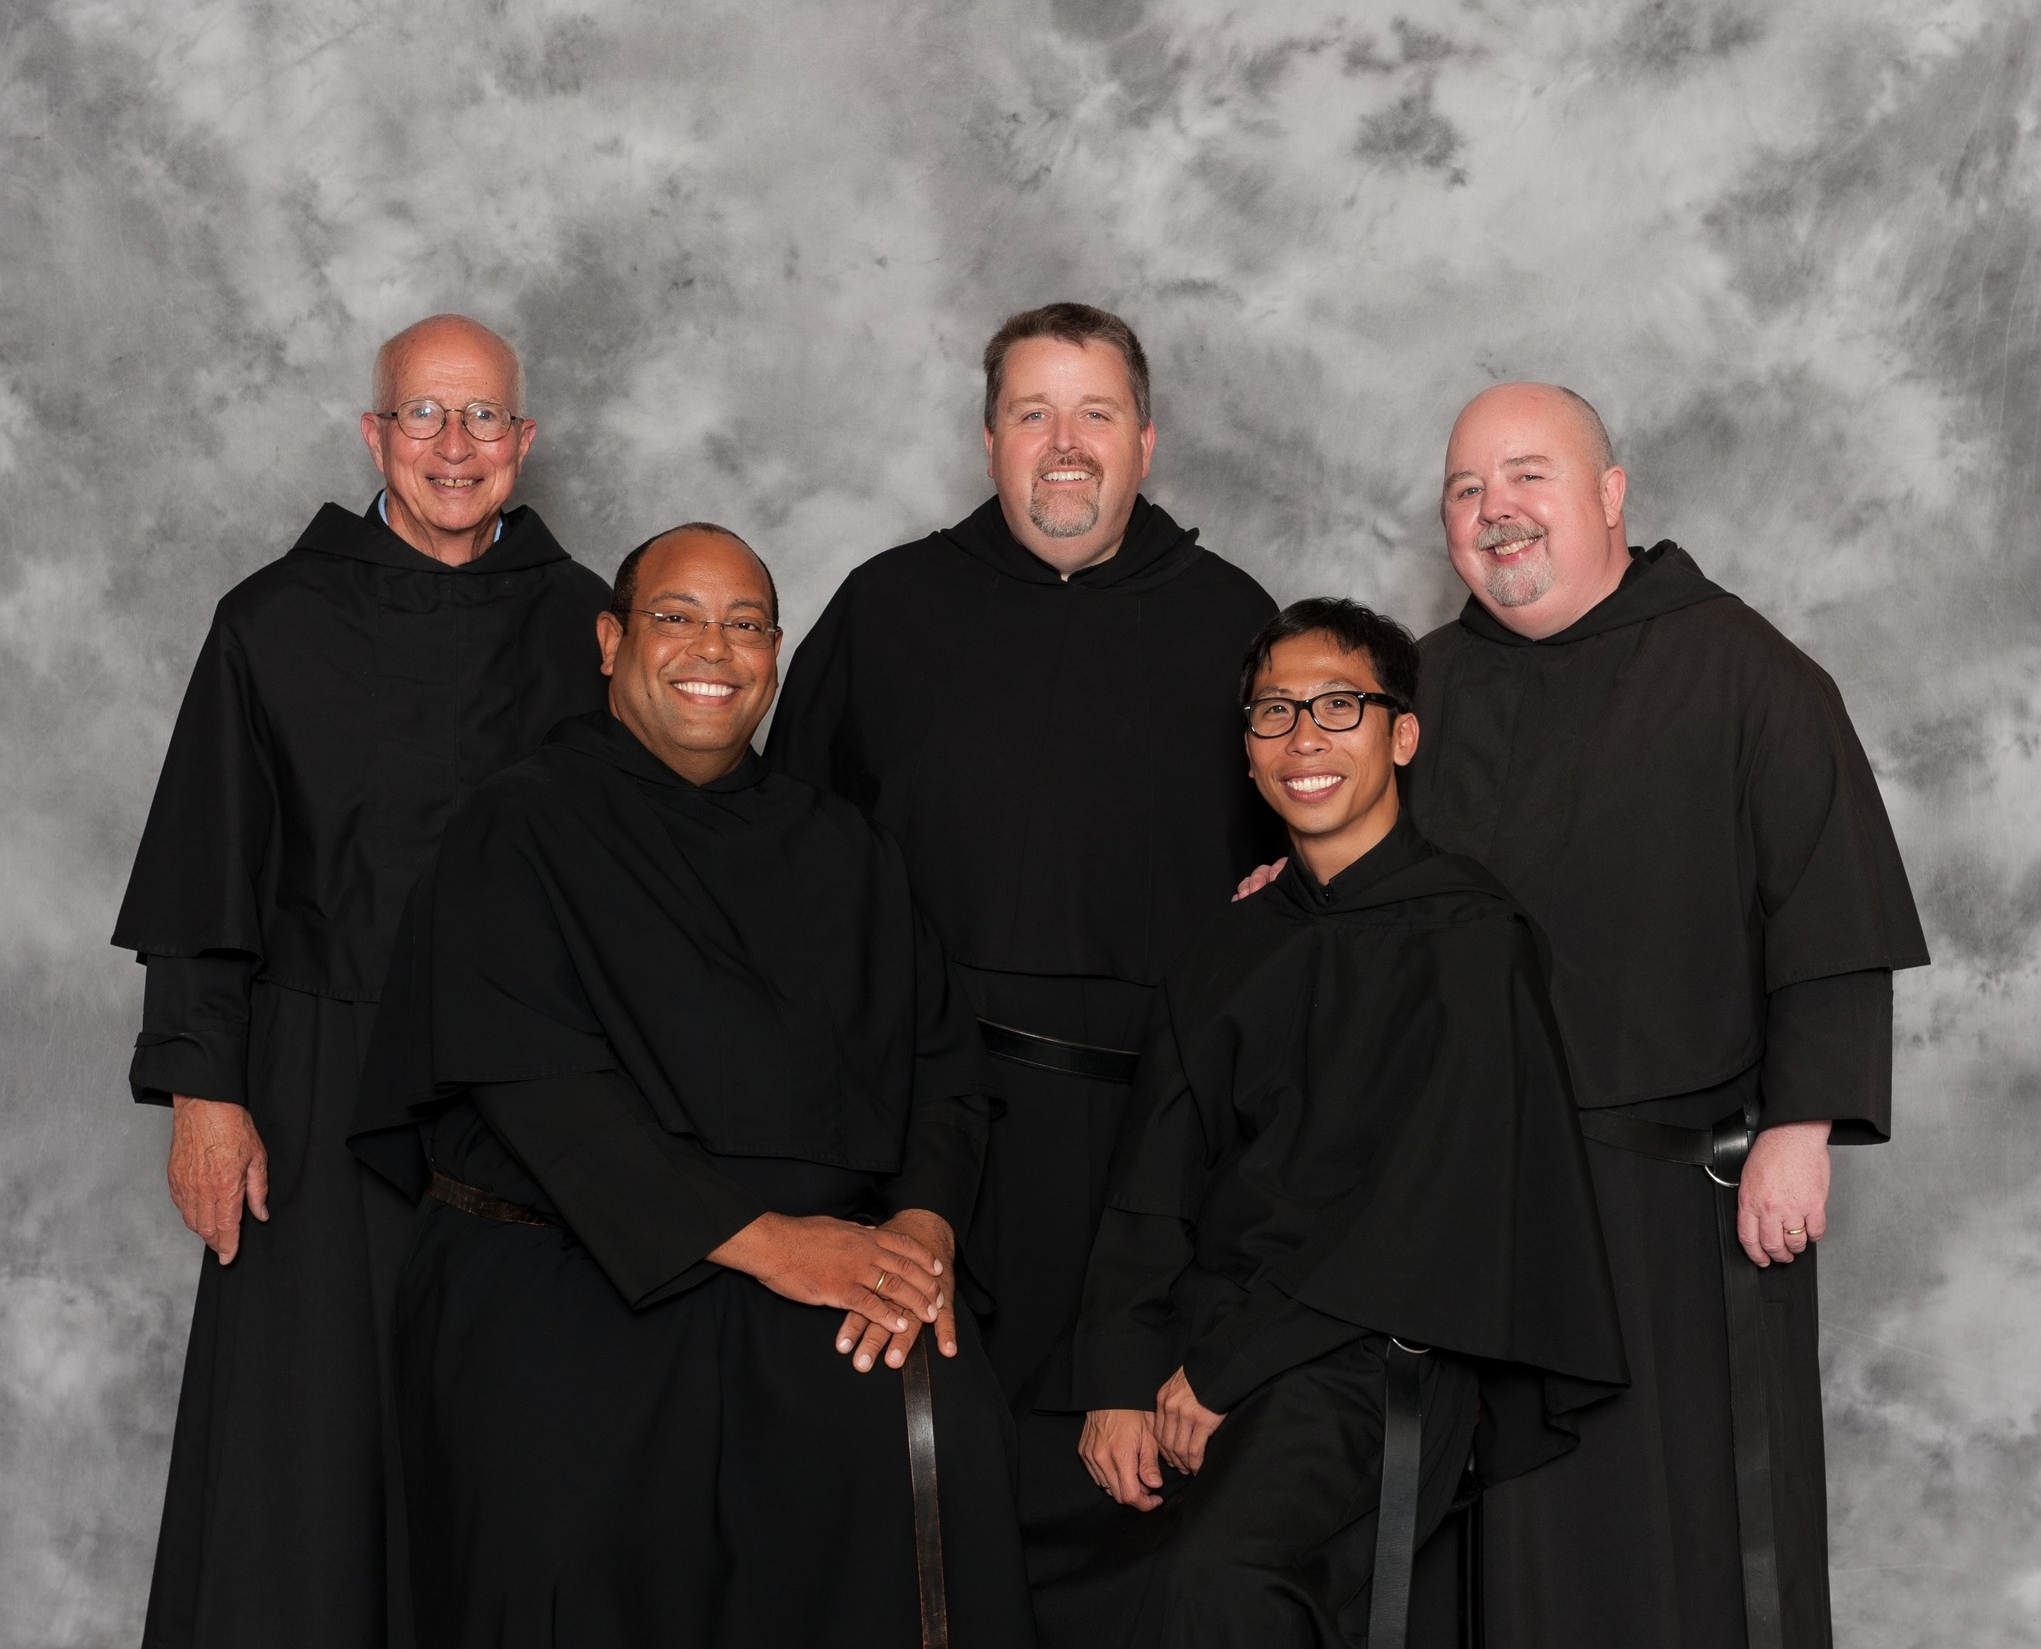 """The Vocations Team for the Augustinians, building a """"Culture of Vocation"""" across the United States in Canada includes  (from left) Fr. Thomas Whelan, O.S.A.; Fr. Jorge Cleto, O.S.A.; Fr. Tom McCarthy, O.S.A.; Fr. Richie Mercado, O.S.A.; and Fr. Joe Murray, O.S.A."""